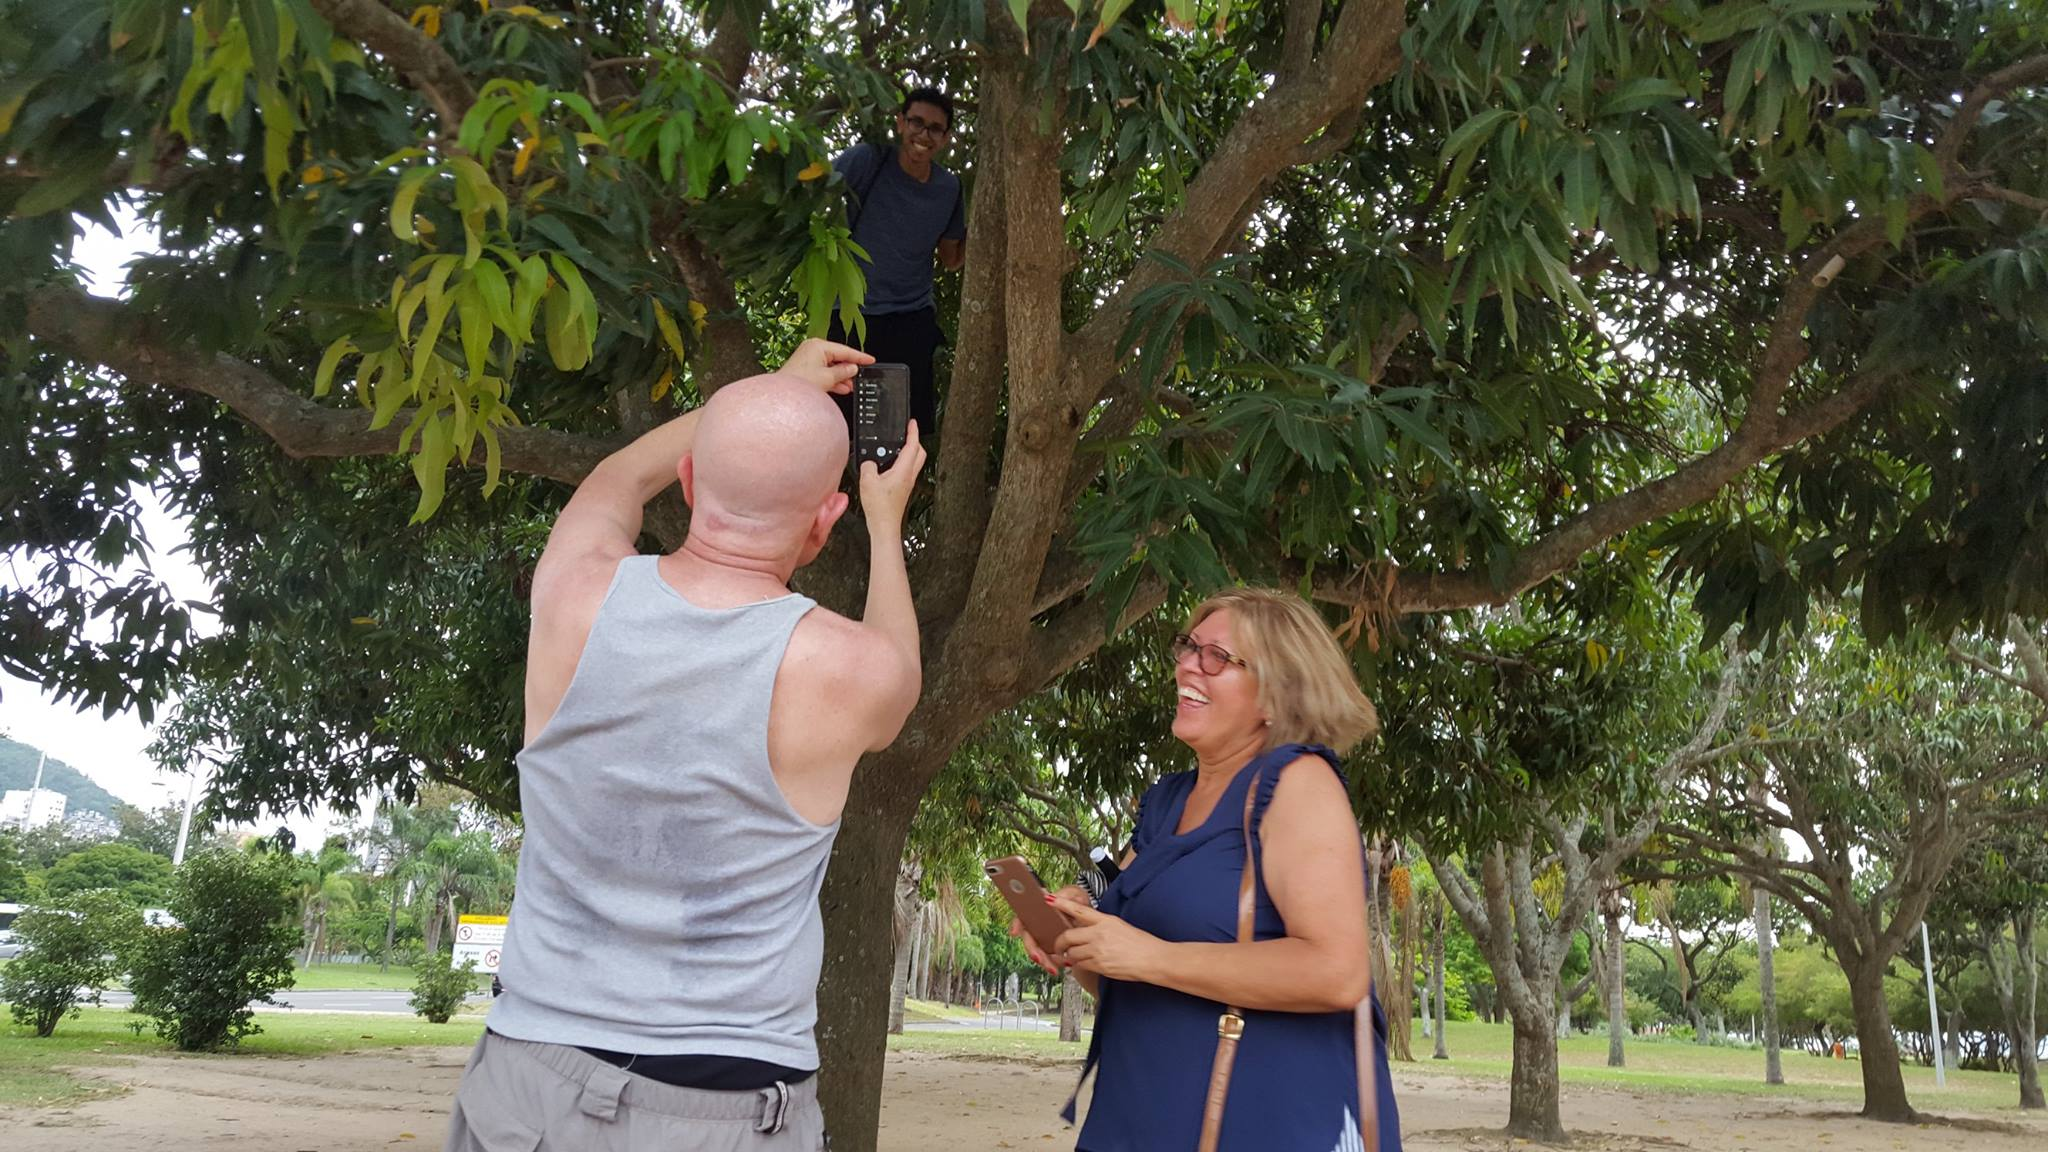 Did you know that students grow in trees? We didn't! Students climbing a tree at Botafogo.